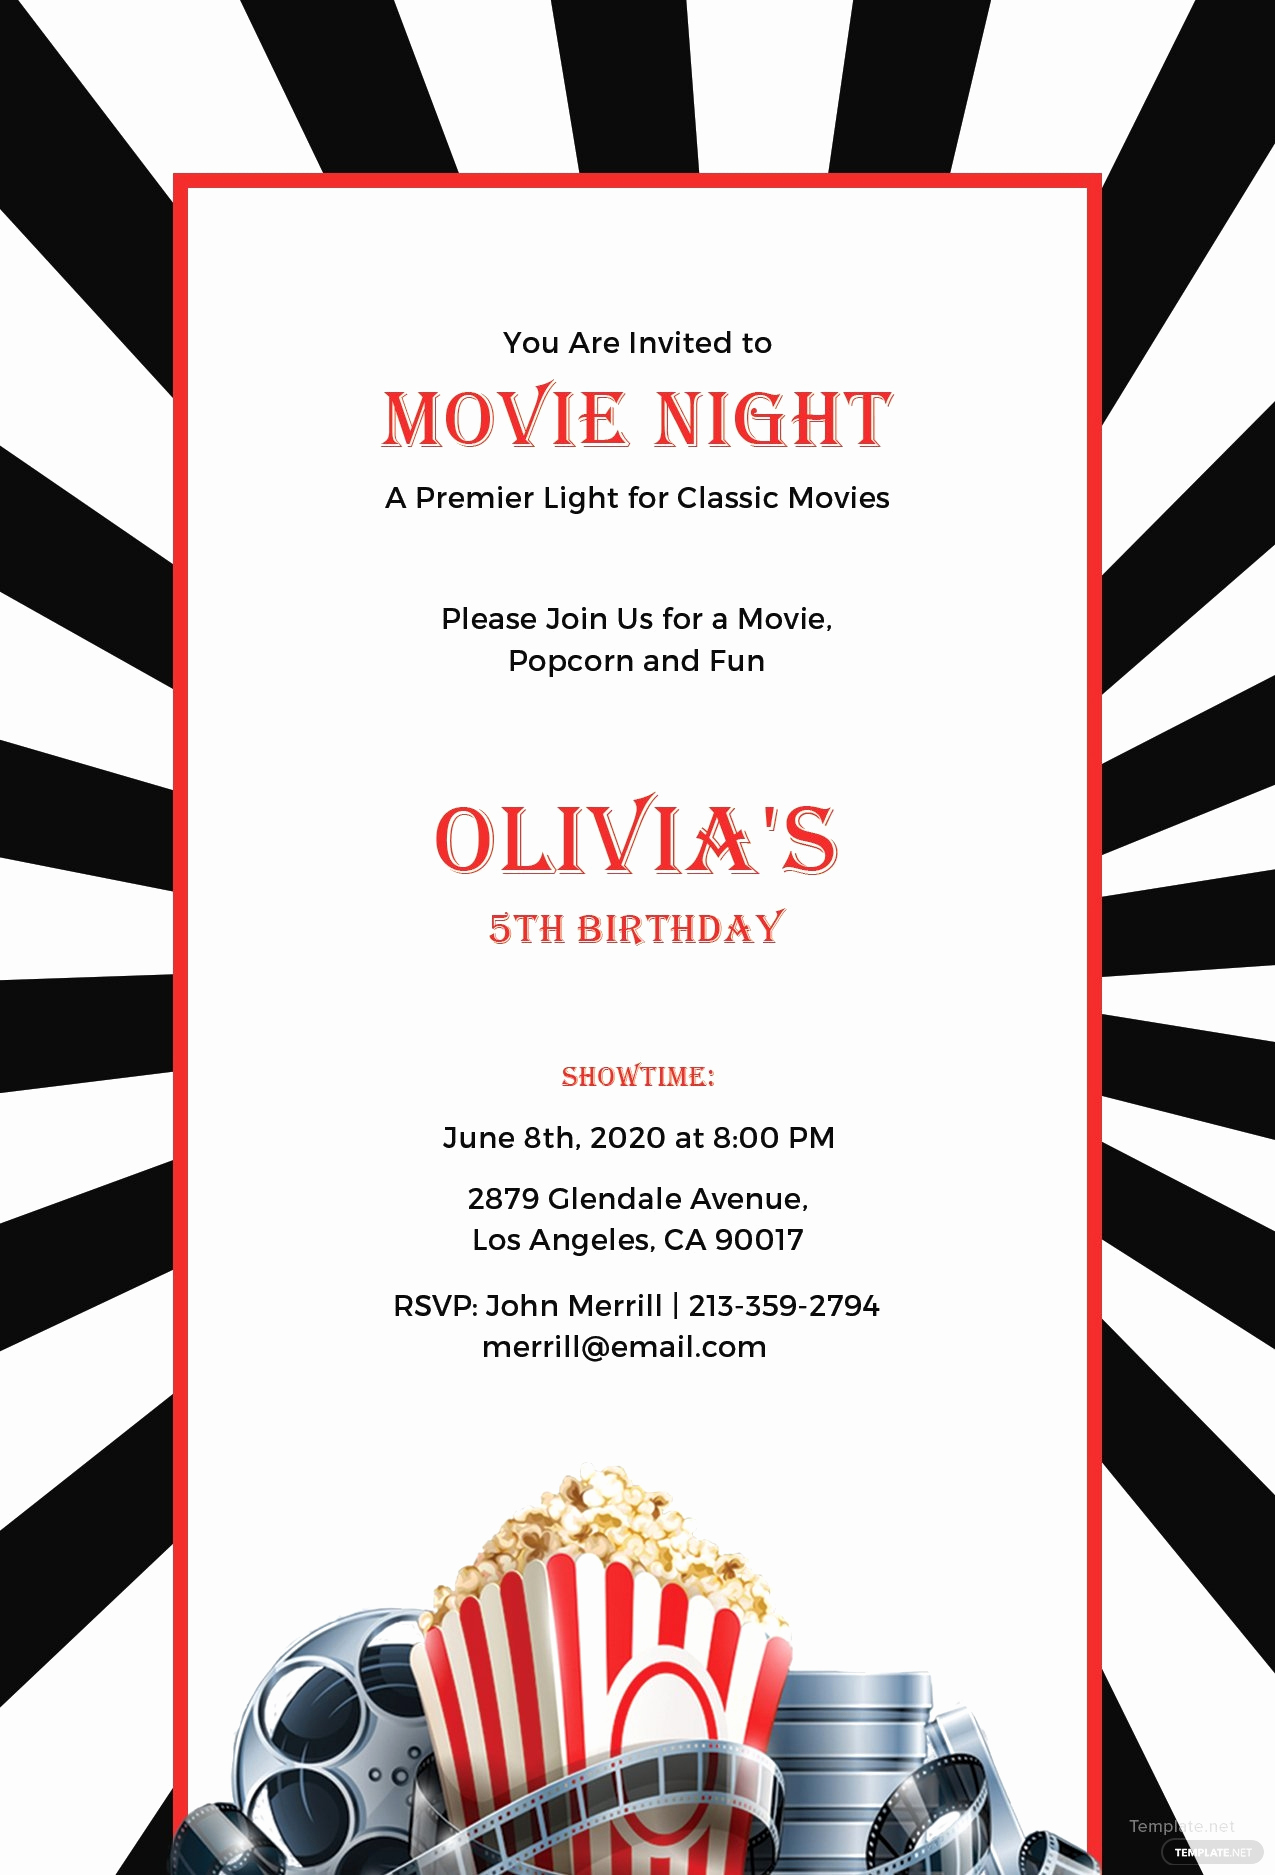 Movie Night Invitation Template Luxury Free Movie Night Invitation Template In Adobe Shop